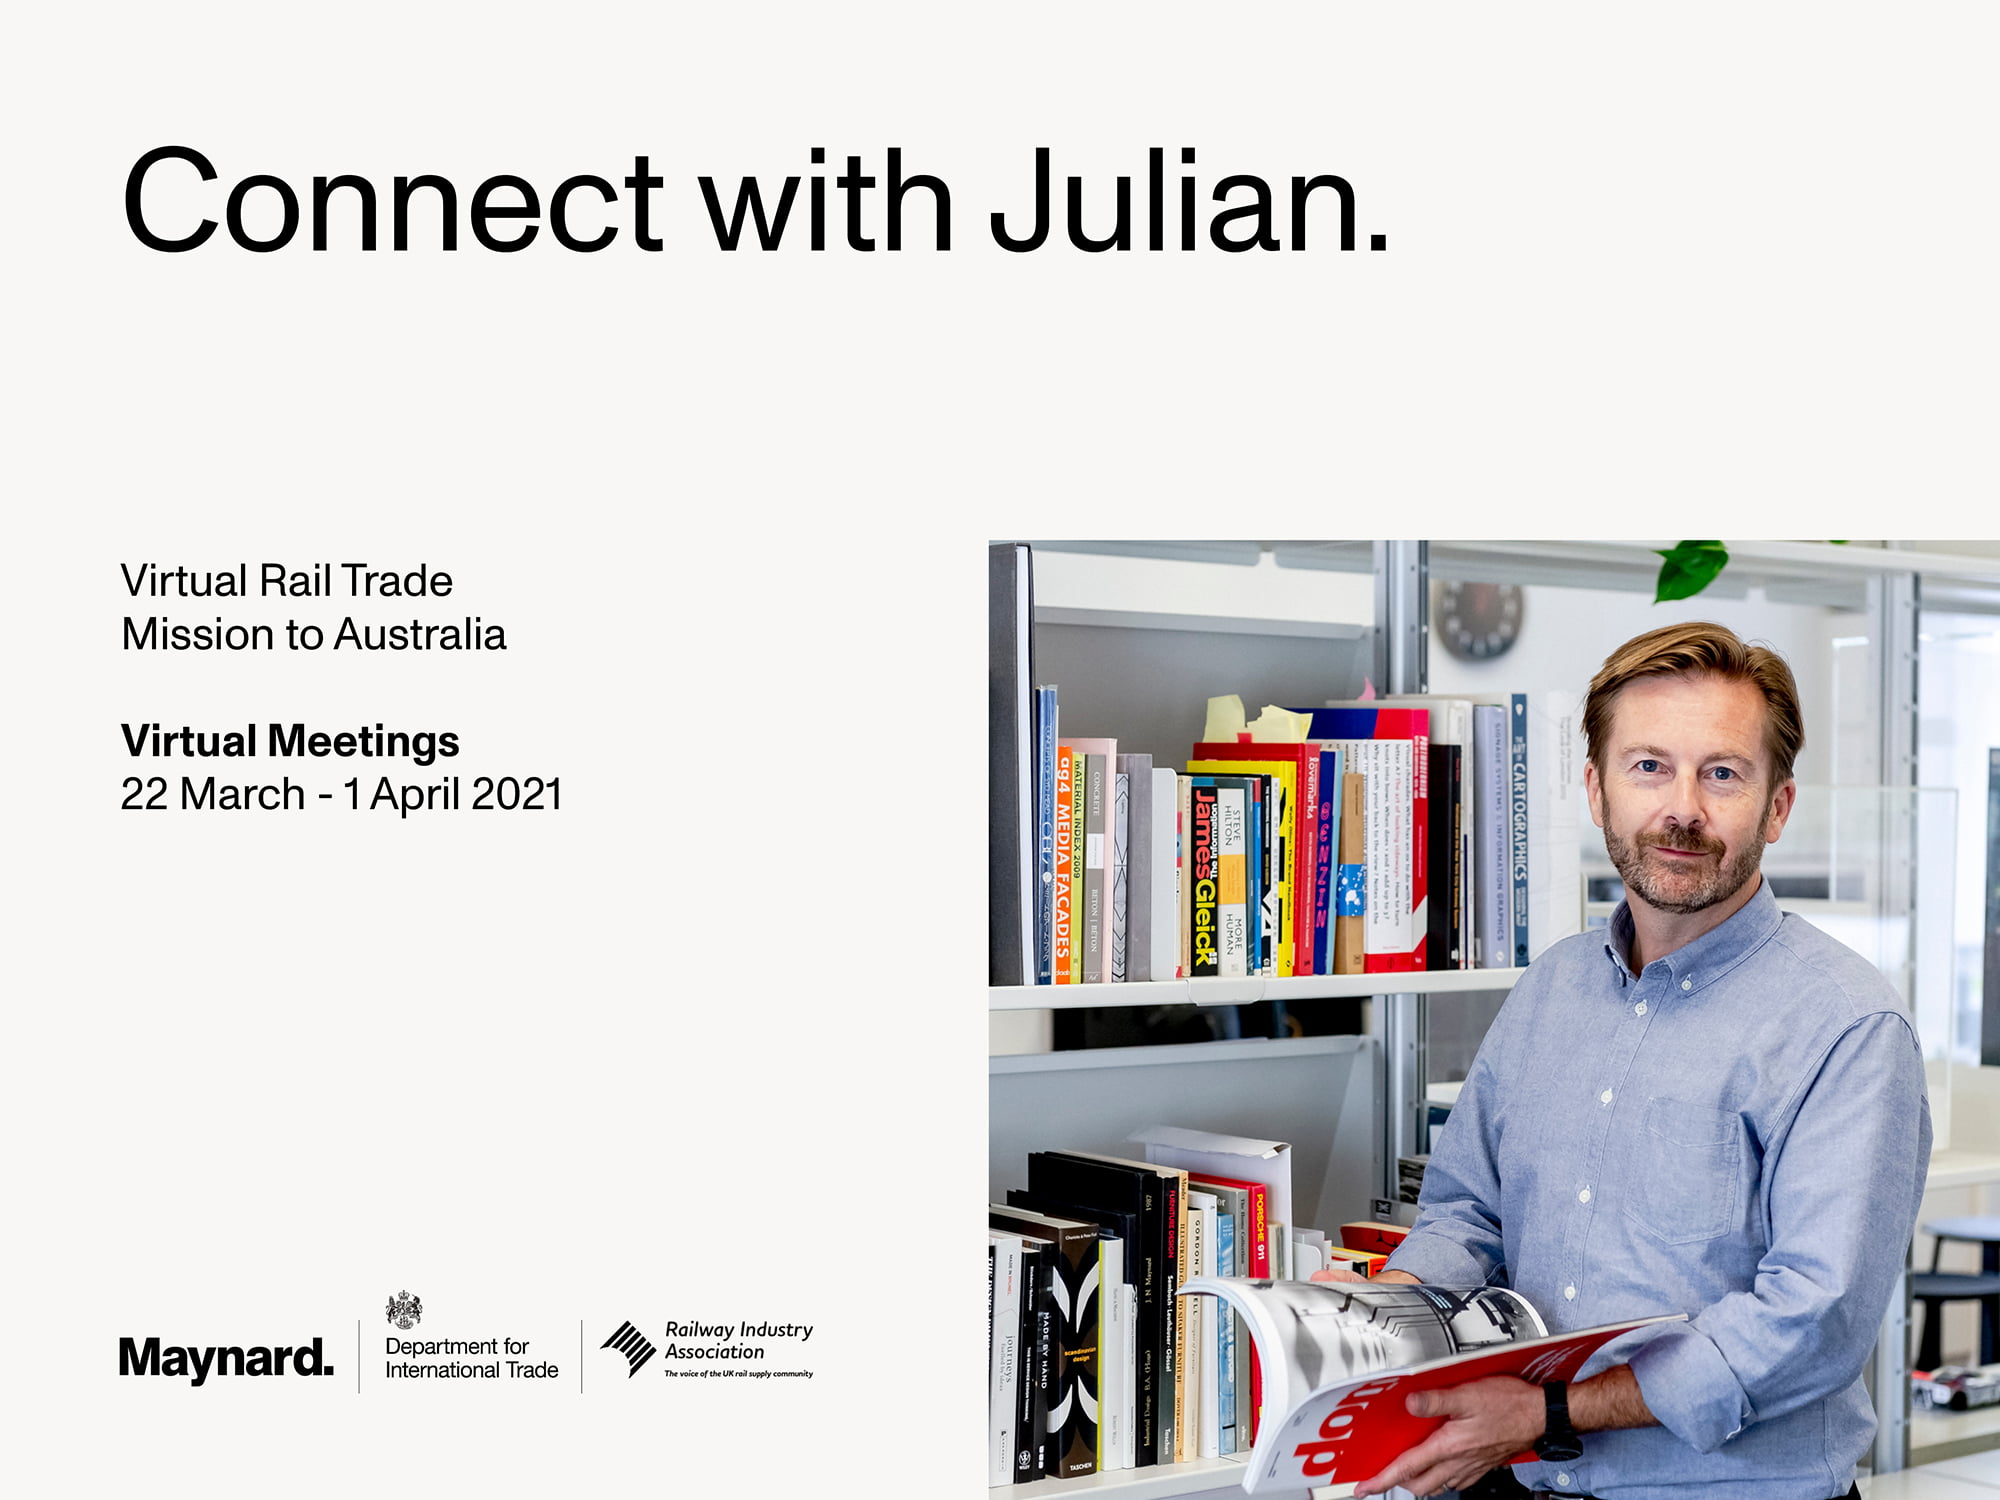 Connect with Julian